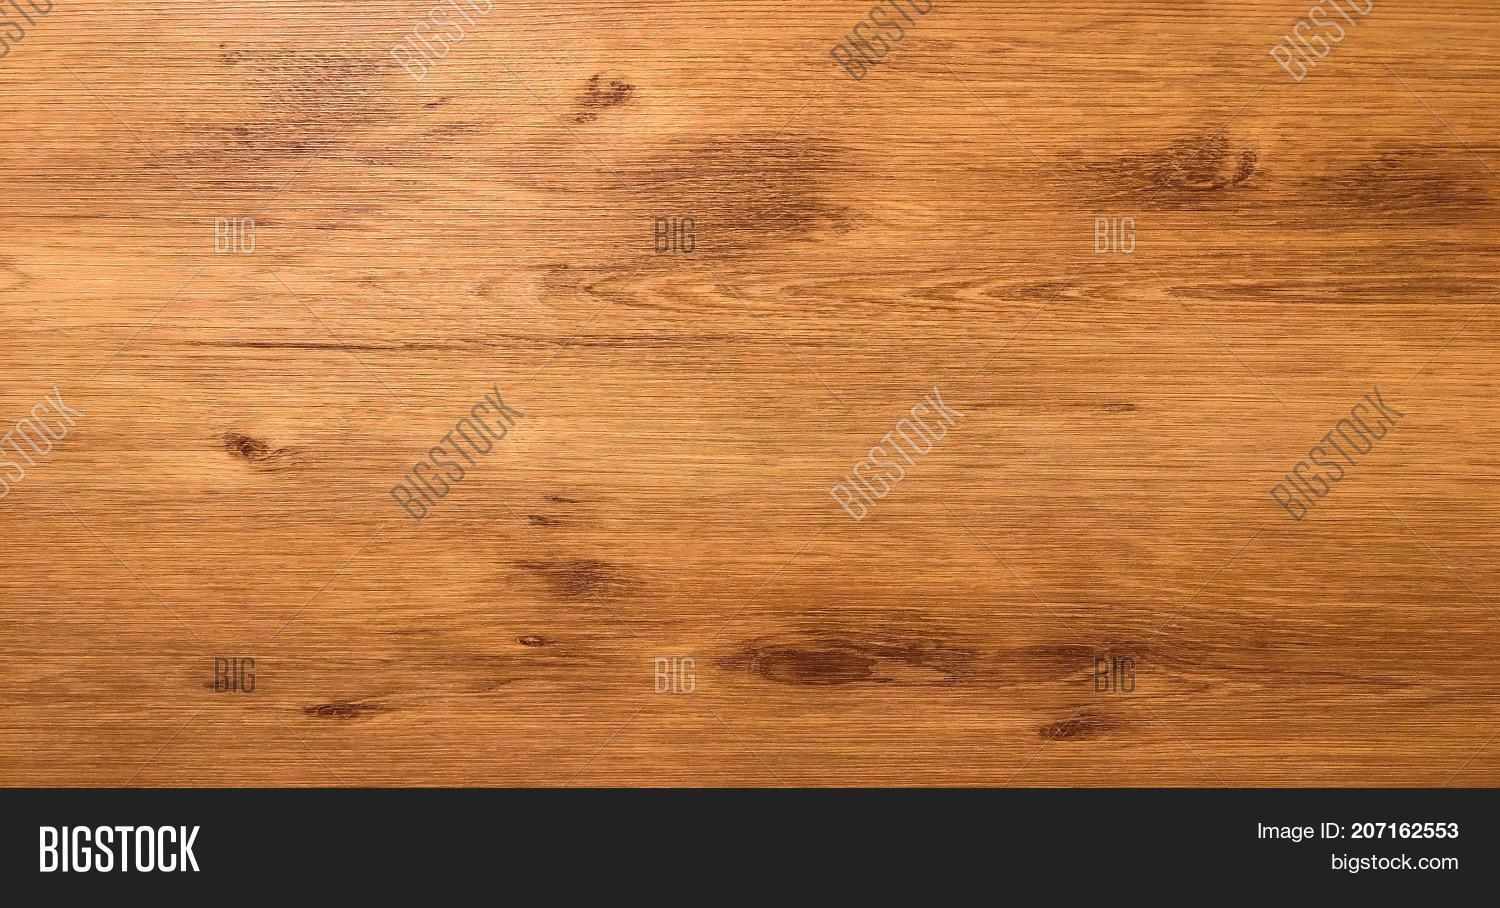 Light Wood Texture Image Photo Free Trial Bigstock